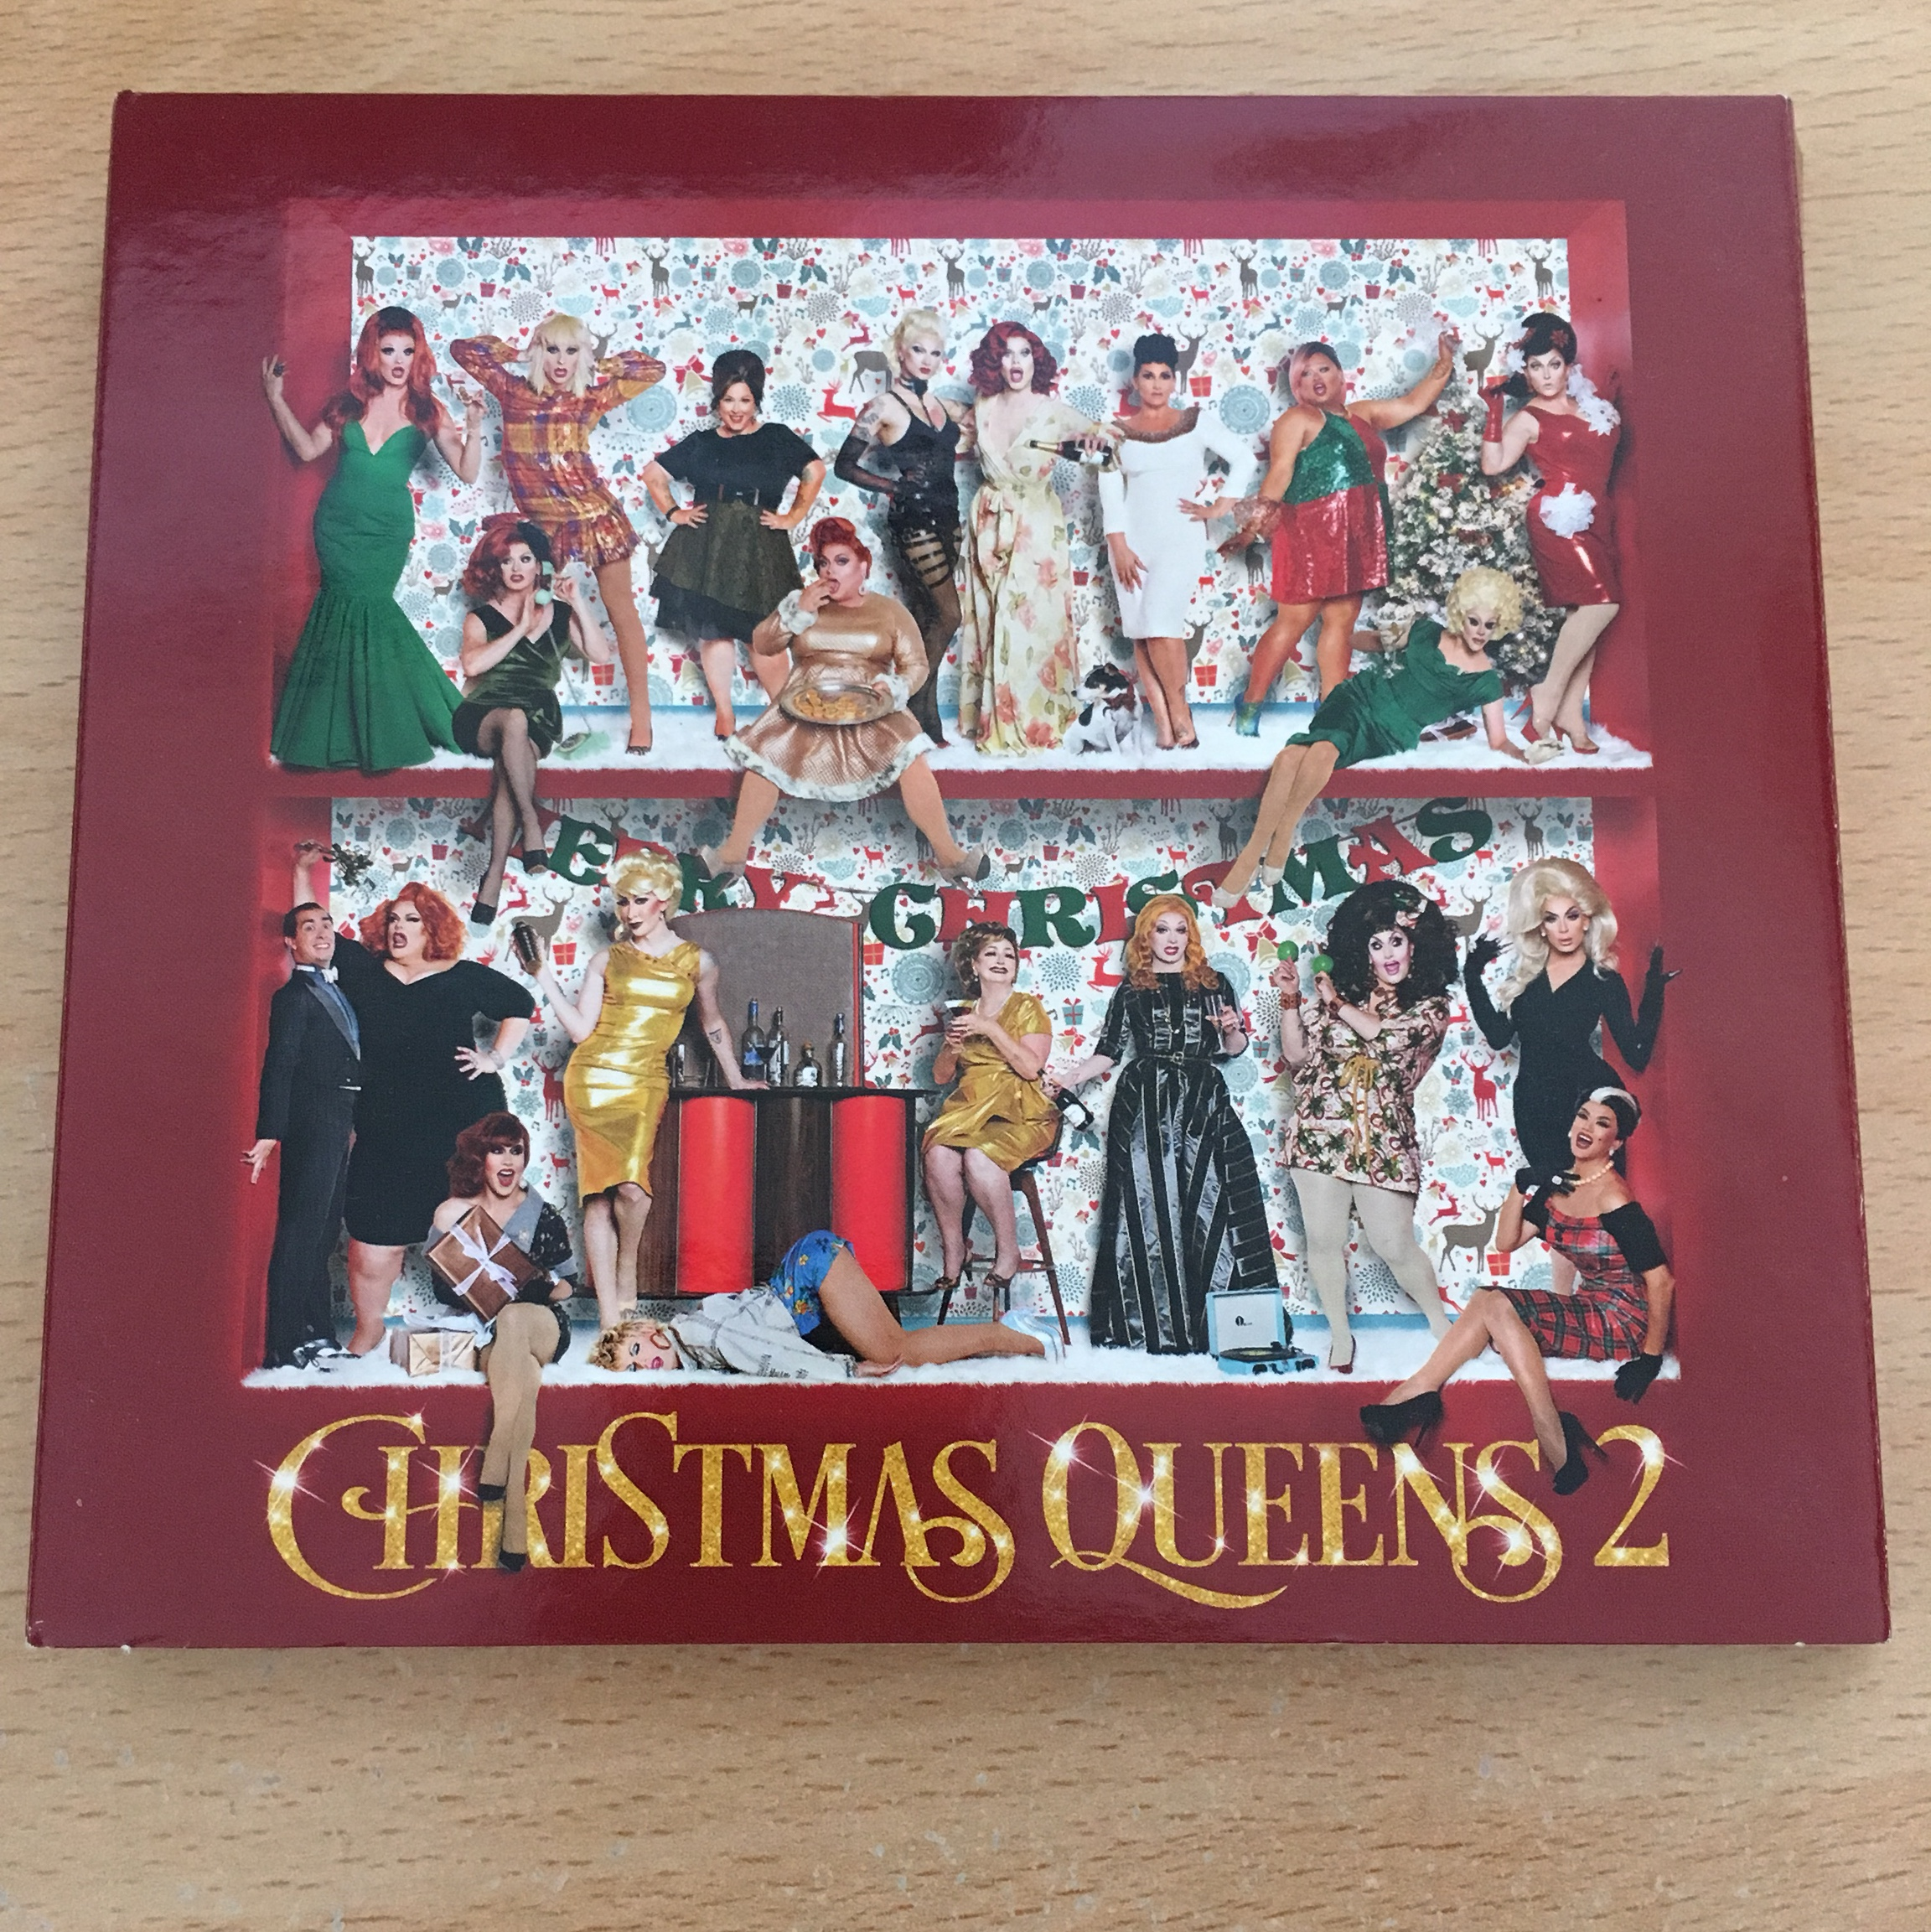 Christmas Queens.Christmas Queens 2 Album Including Performers Such